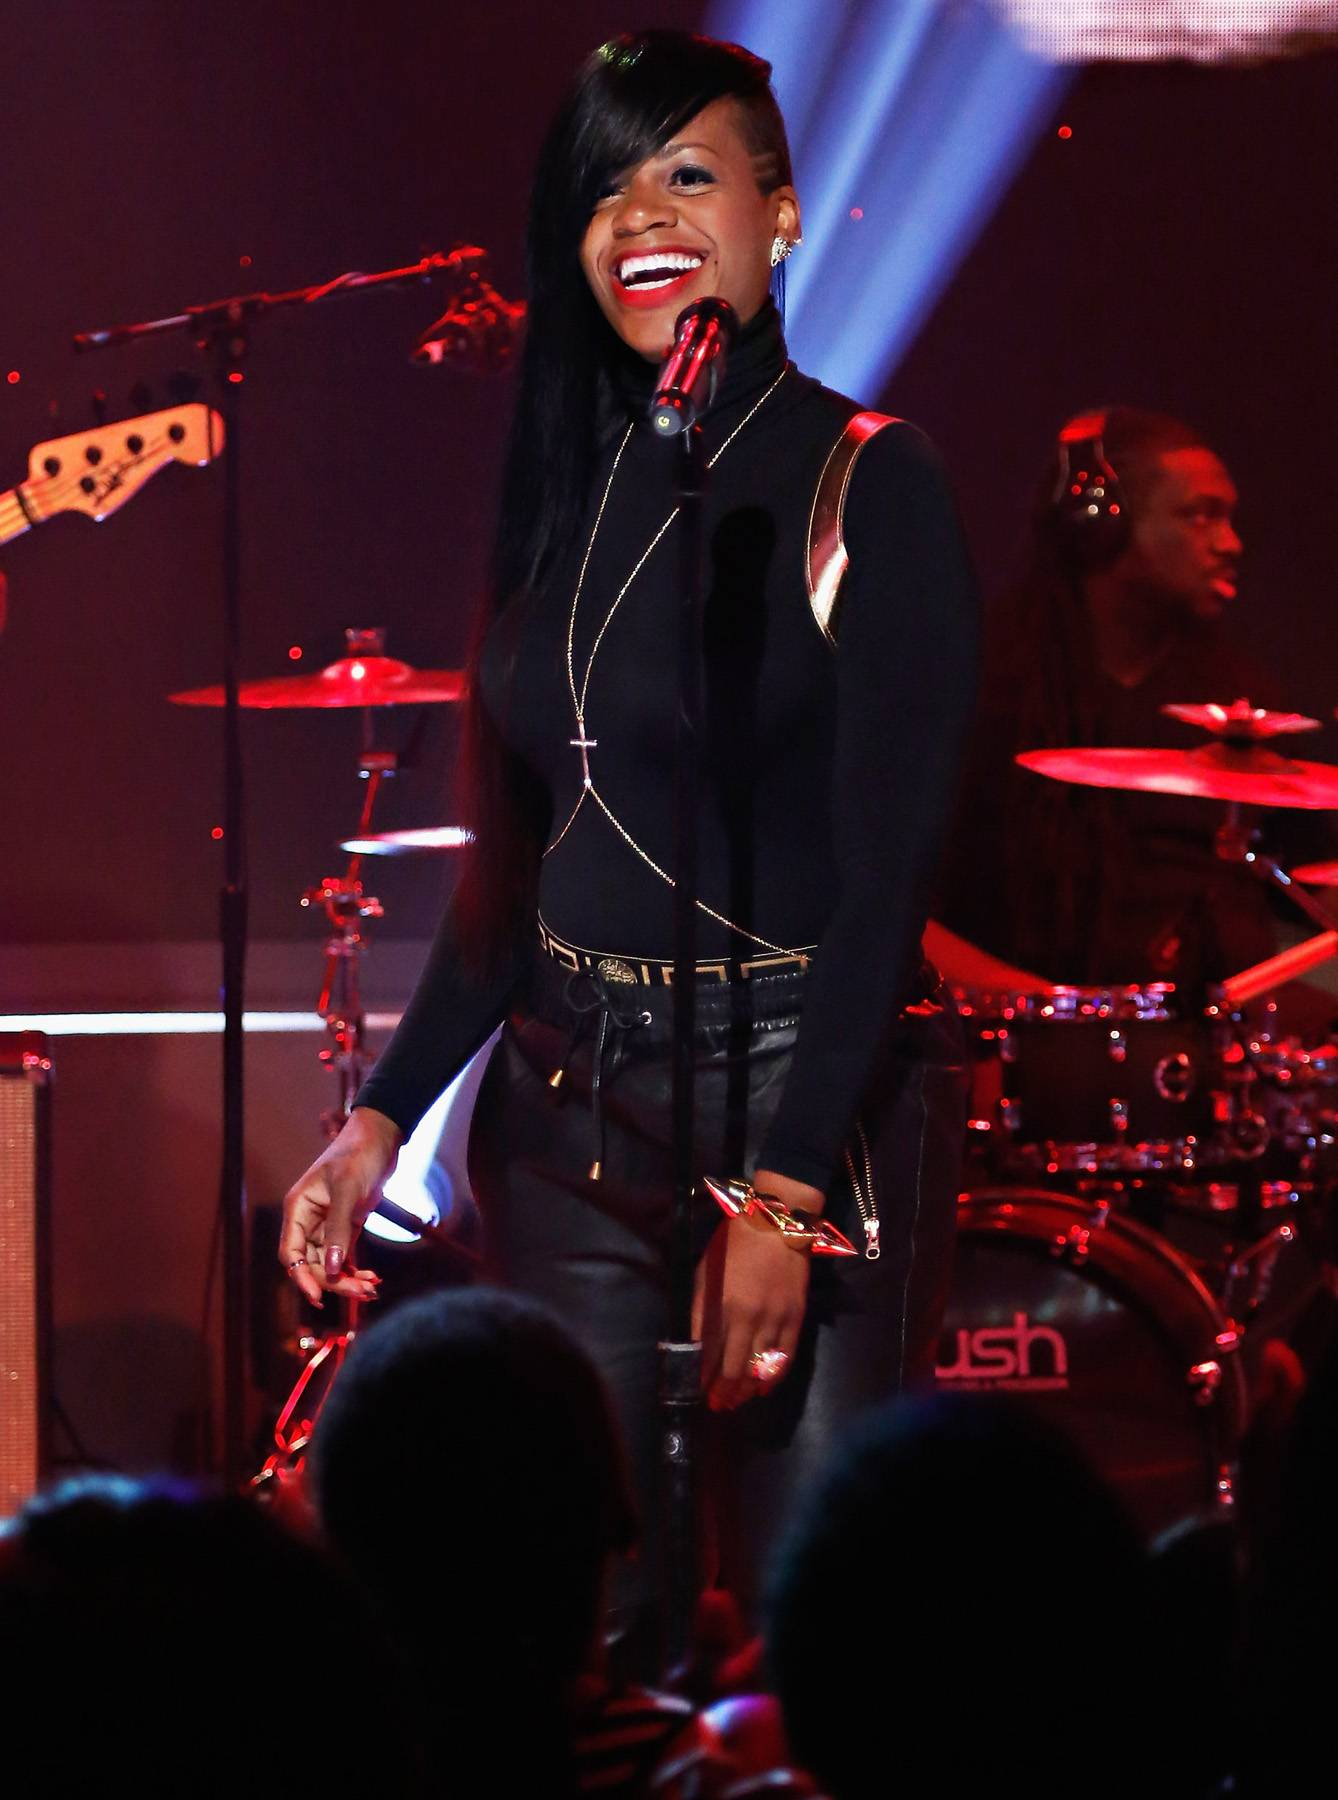 Best R&B/Soul Female Artist: Fantasia - Following a string of personal hardship, the former American Idol winner reclaimed the top spot with her chart-topping fourth studio album, Side Effects of You(Photo: Cindy Ord/BET/Getty Images for BET)